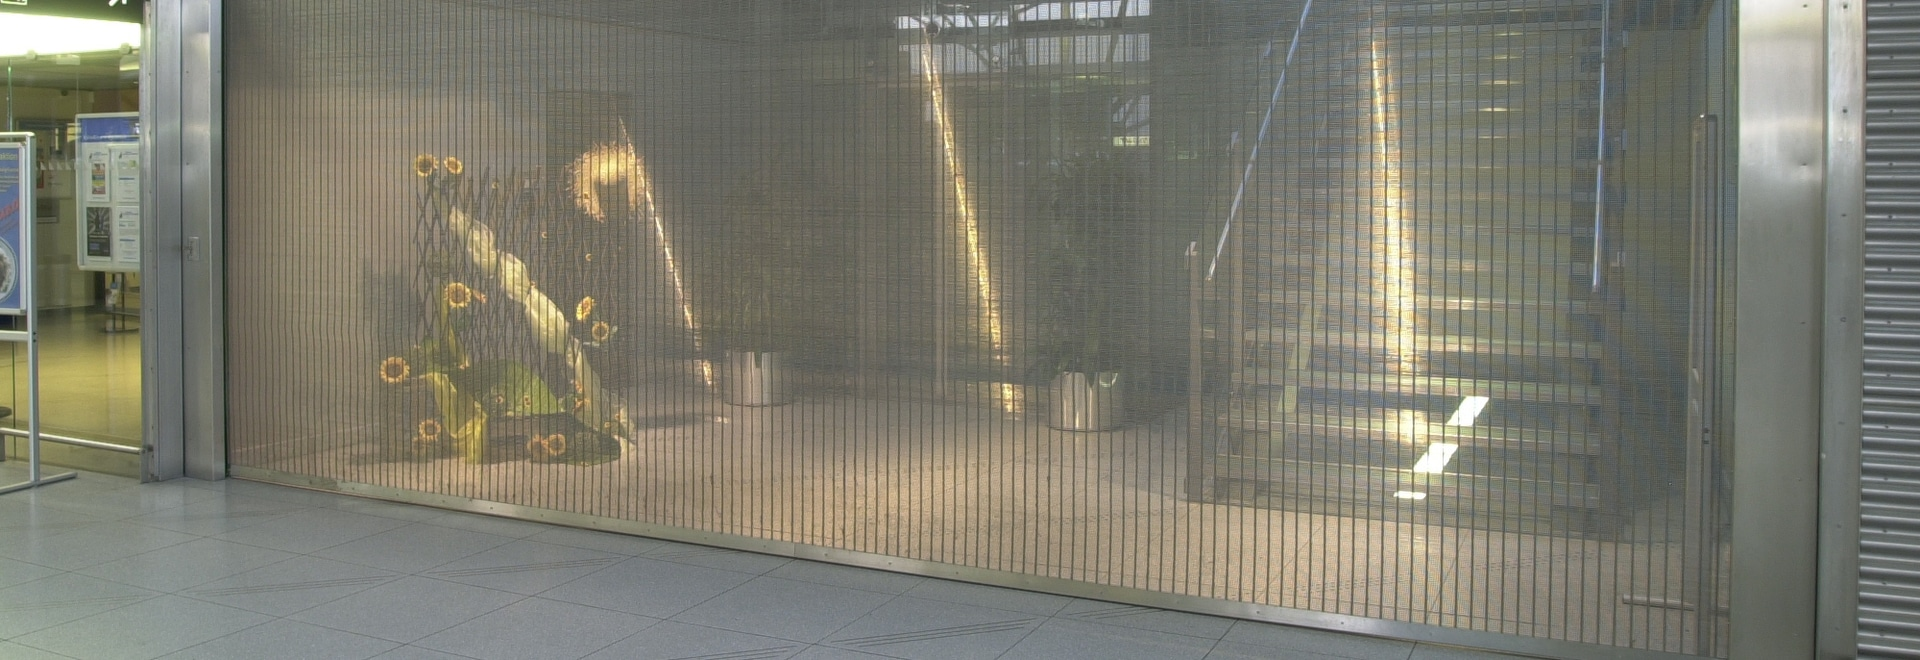 Roller shutters made of metal mesh for display windows, counters and underground garages